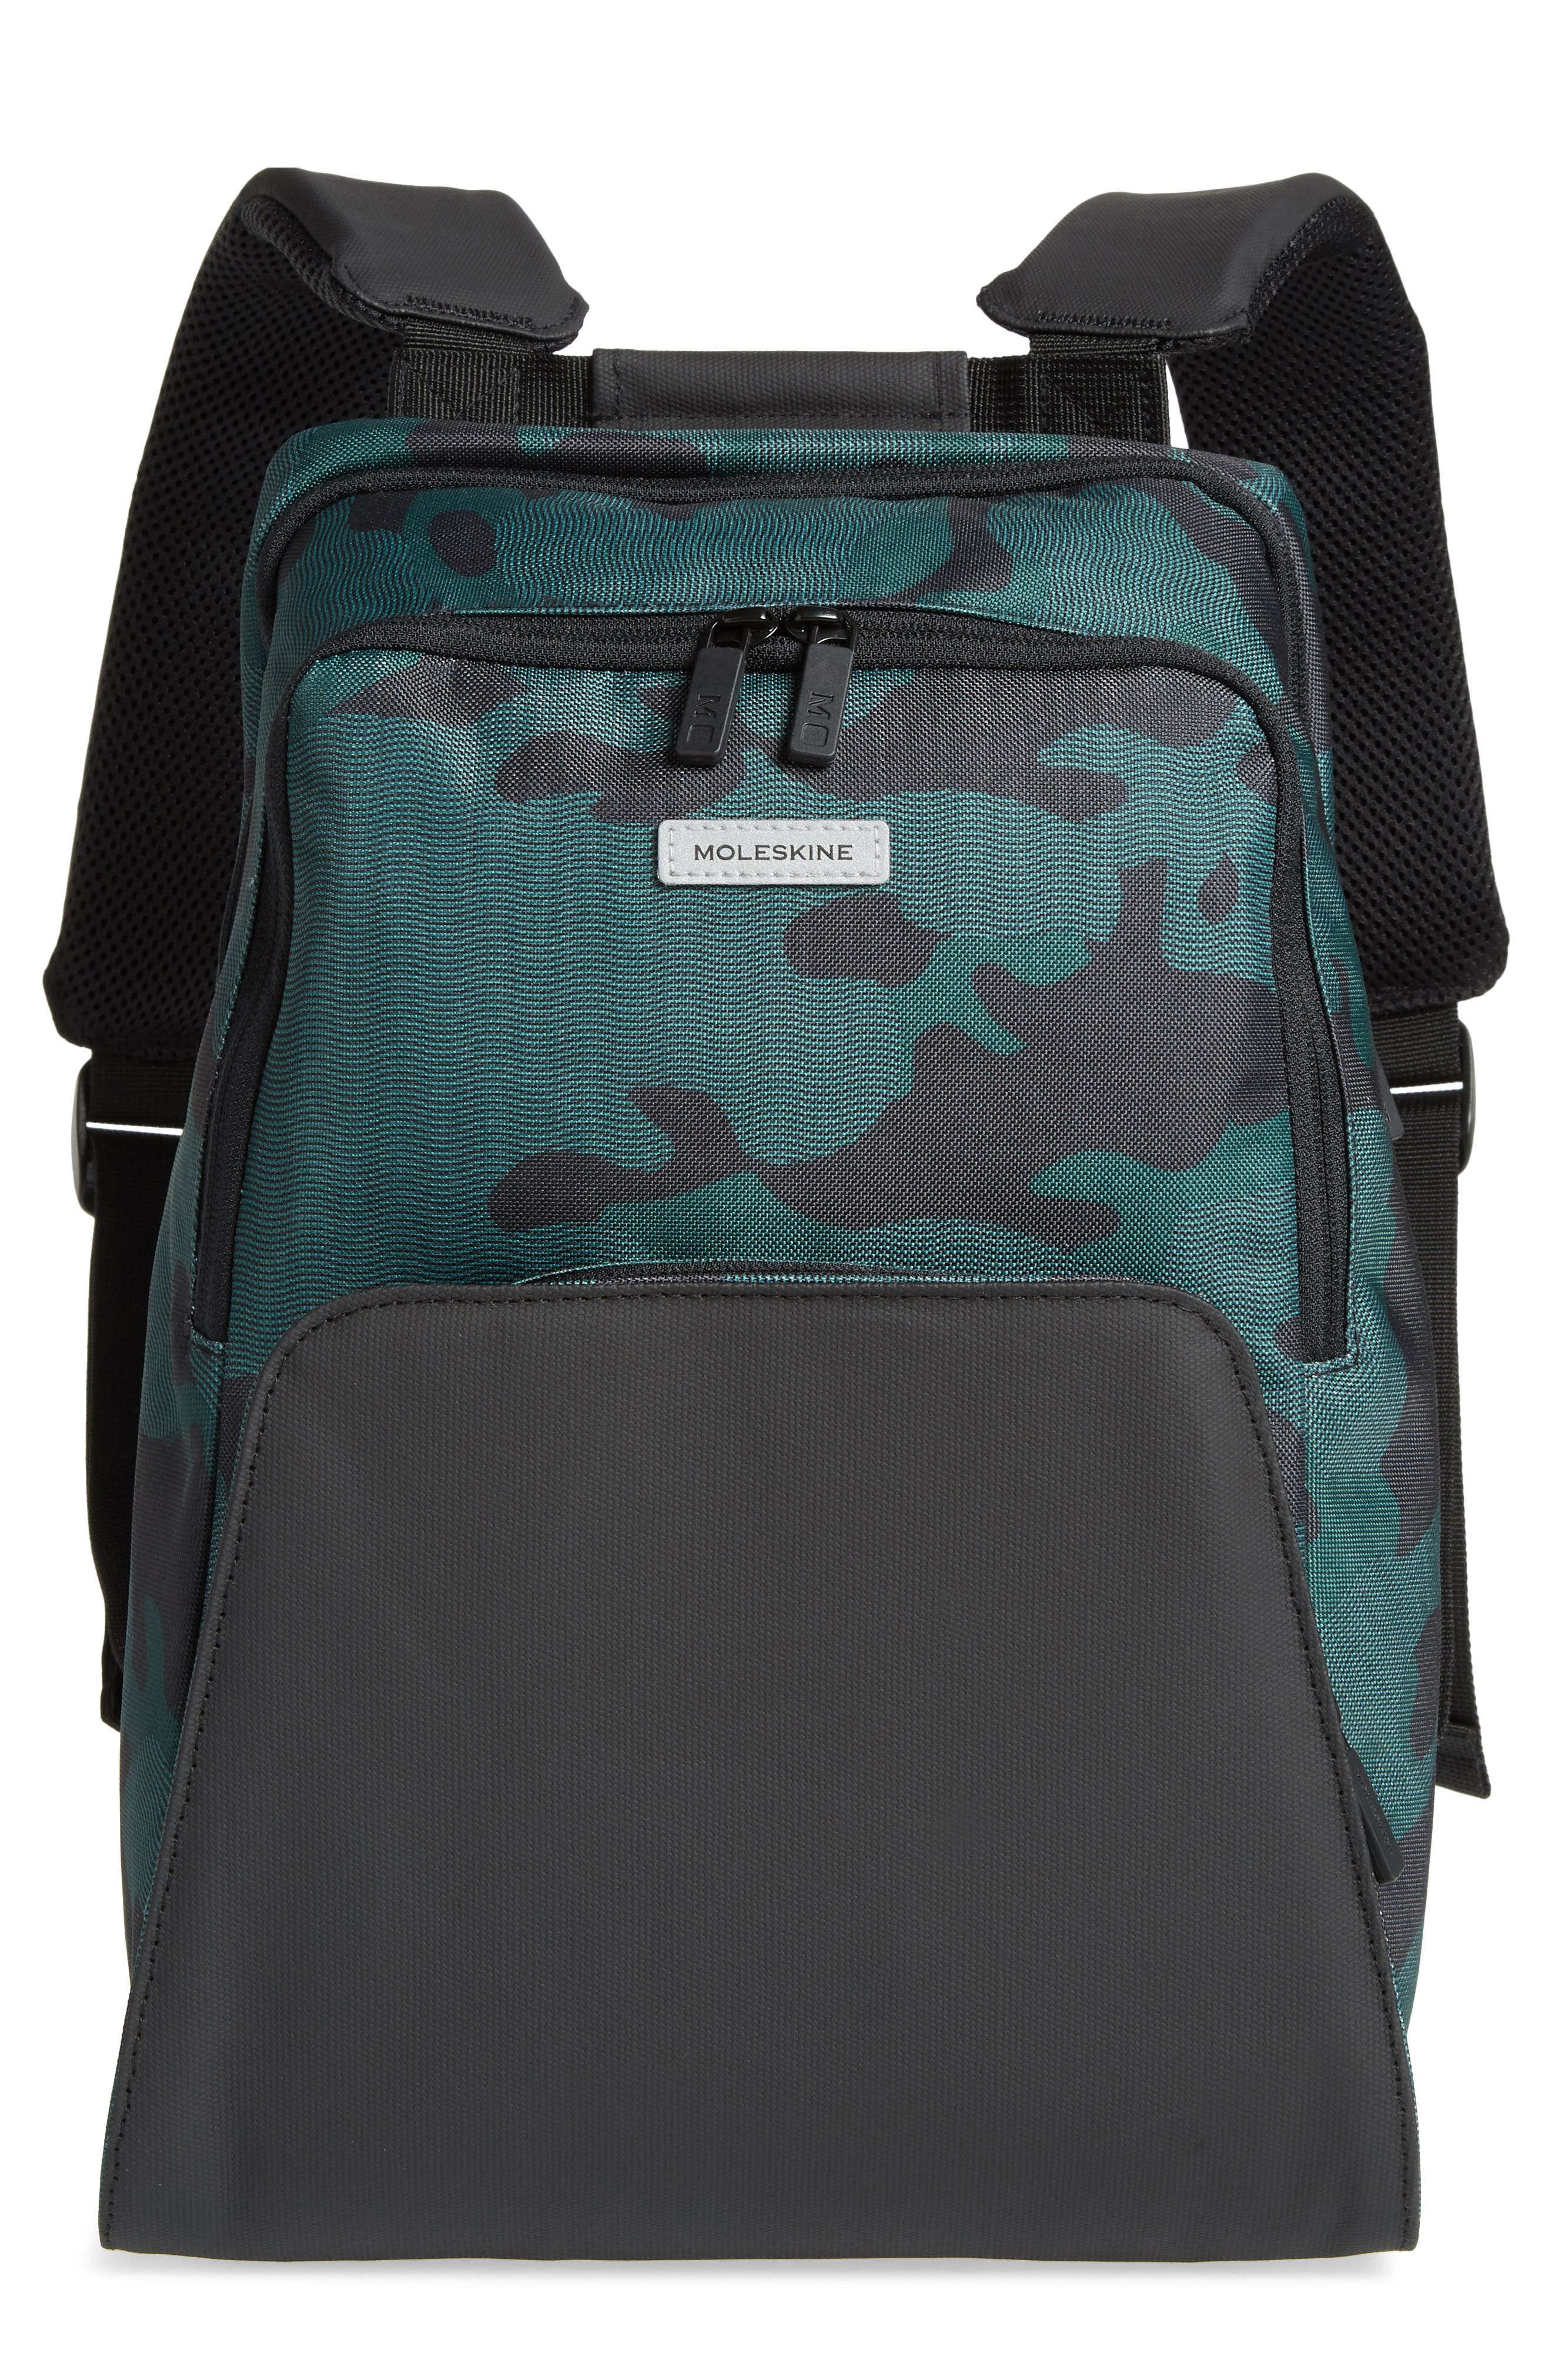 Nomad Water Resistant Backpack,                             Main thumbnail 1, color,                             CAMO GREEN